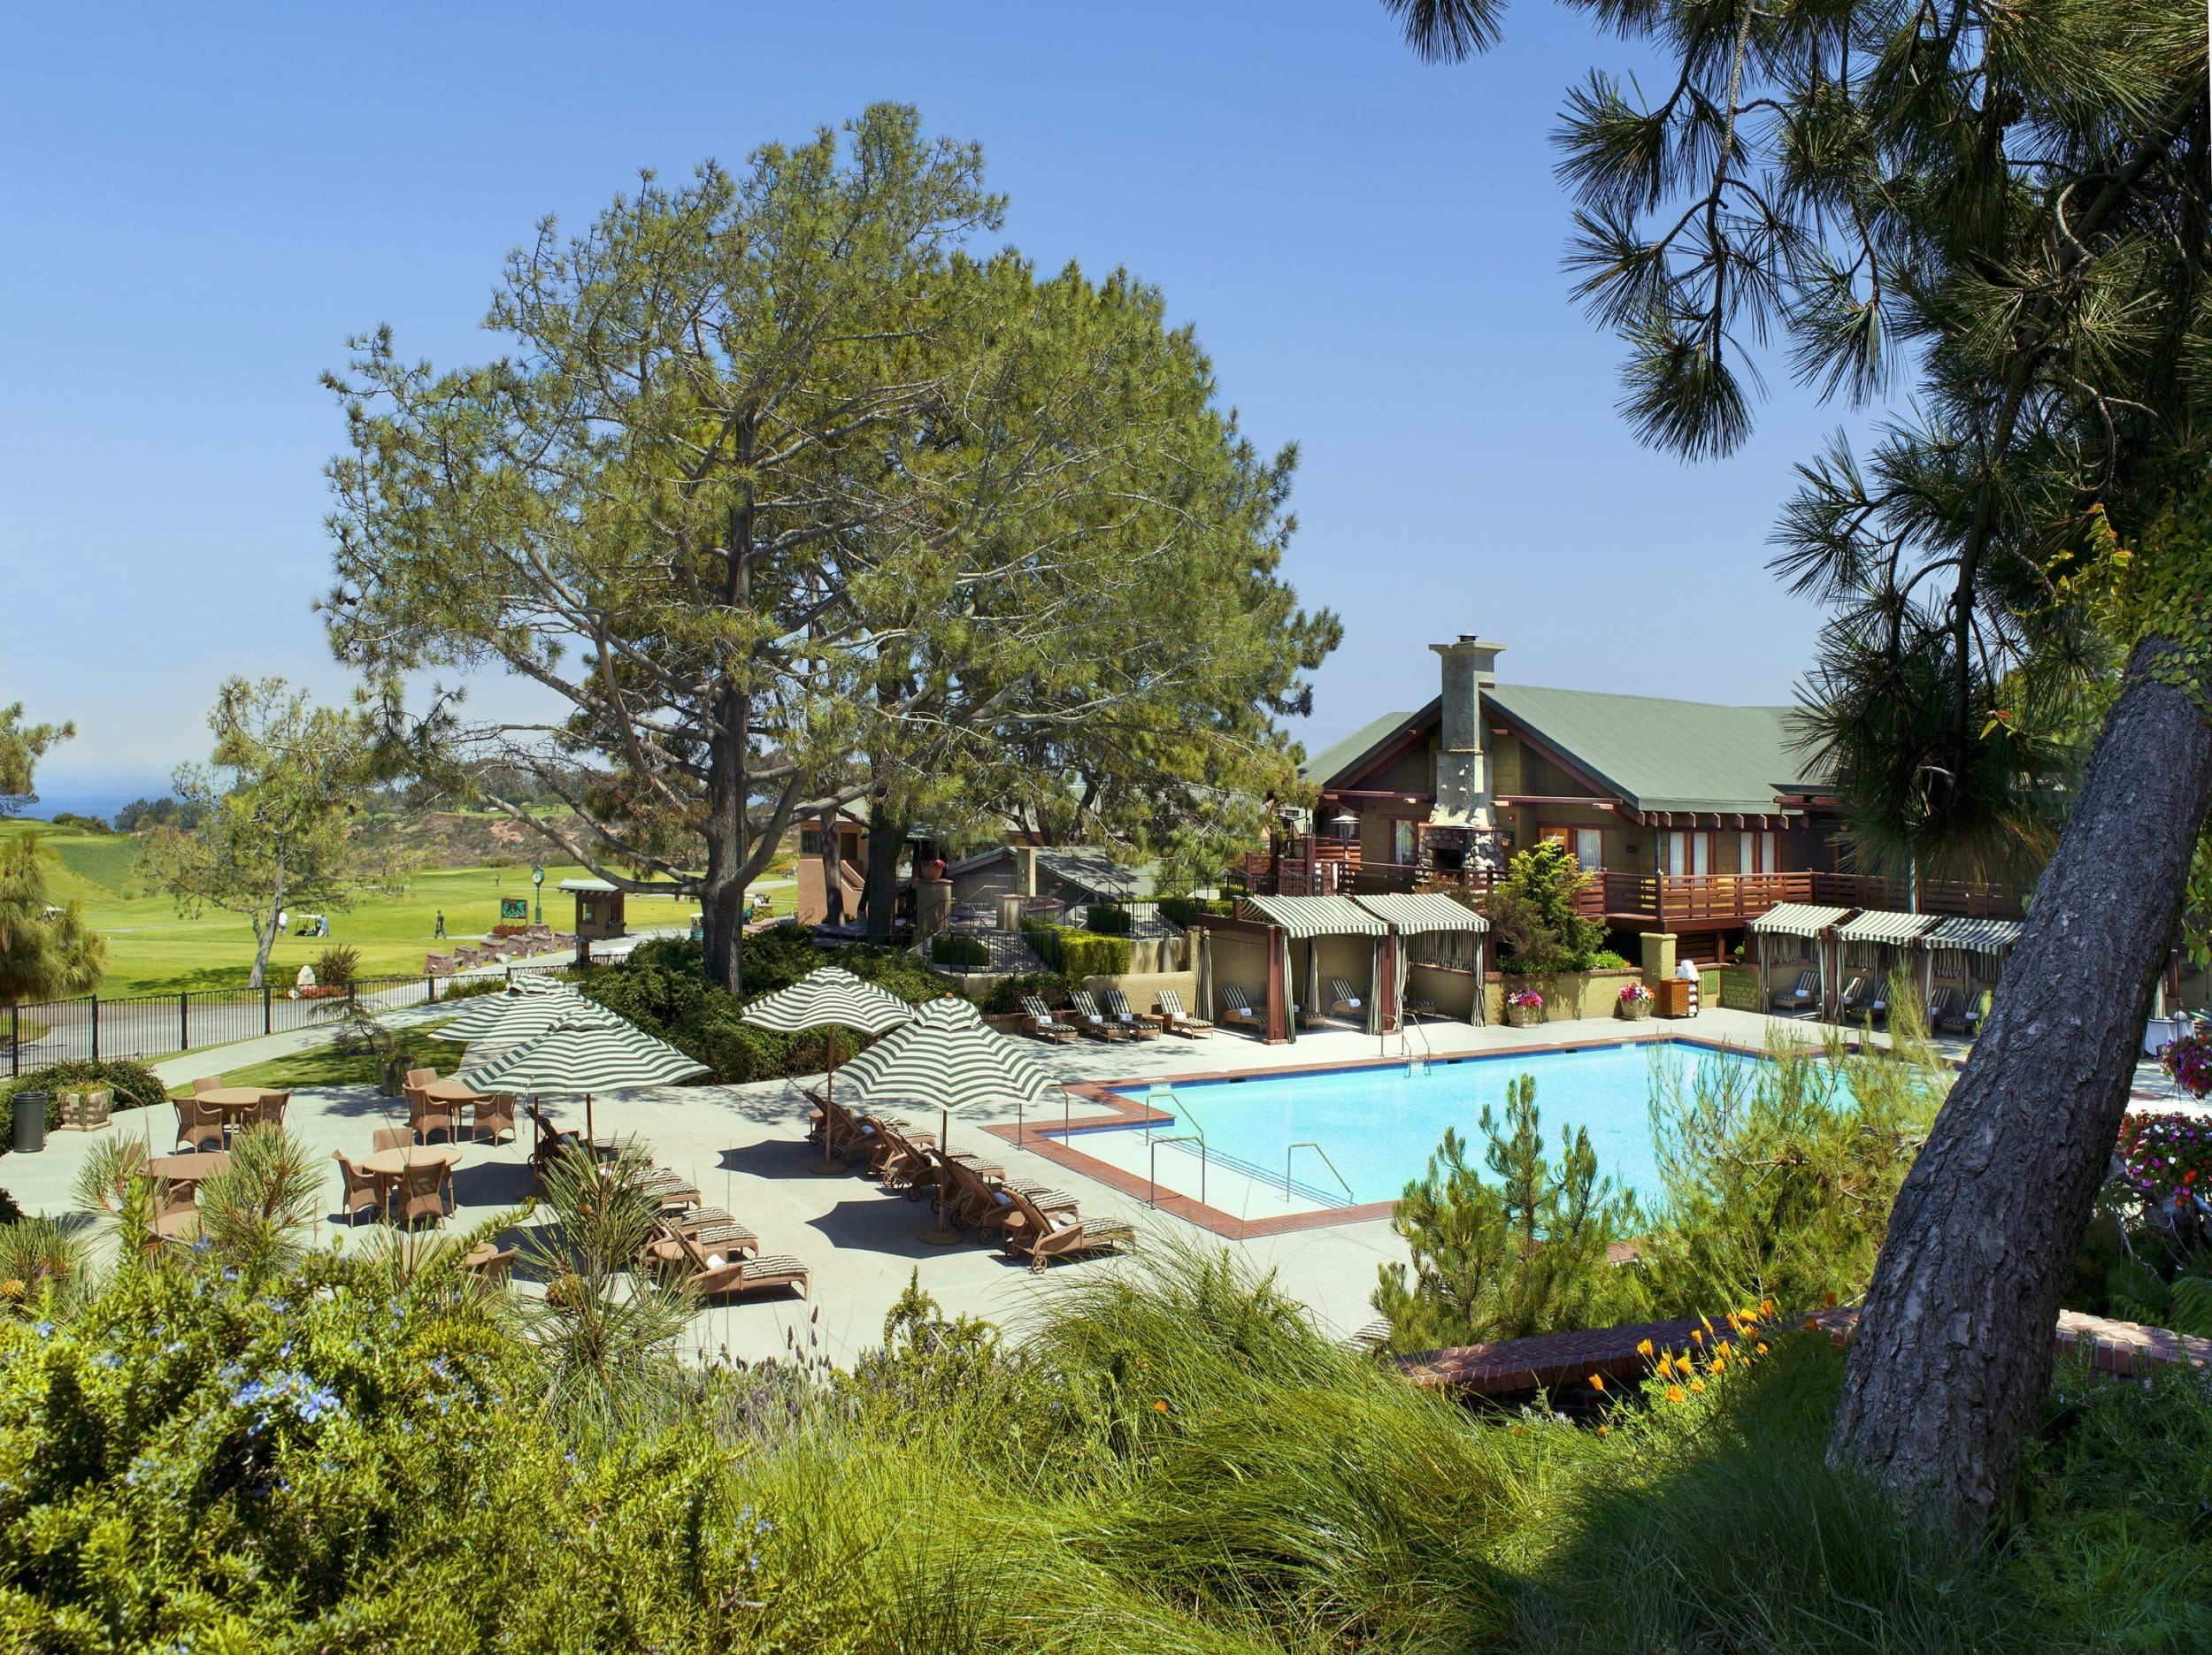 Pool area at The Lodge at Torrey Pines